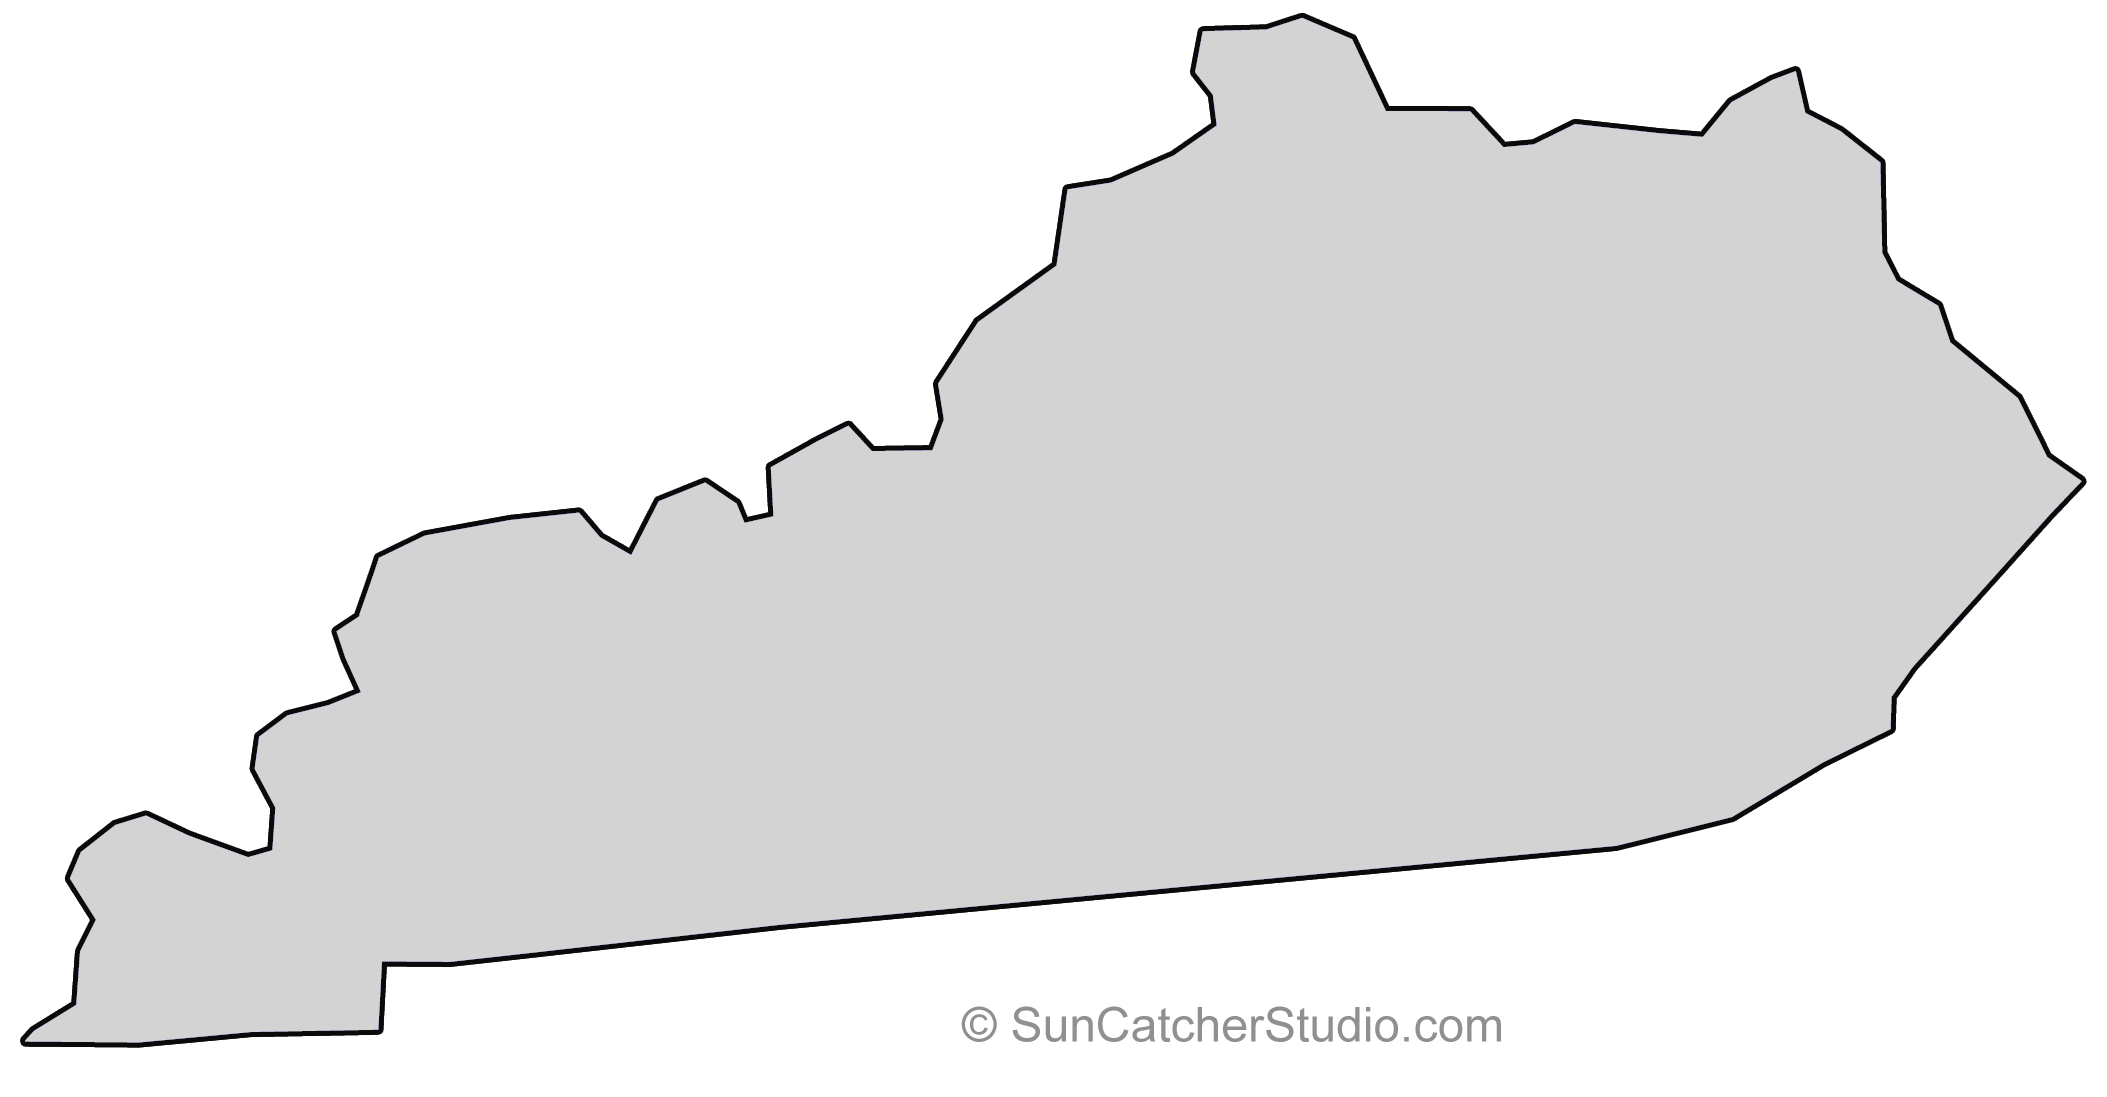 Kentucky State Outline Map on kentucky state outline black, kentucky state black and white, kentucky state outline printables, kentucky outline clip art, northern kentucky map outline, kentucky county outline, kentucky state tree, kentucky regions outline map, lexington kentucky map outline, kentucky state shape, kentucky map outline blank, kentucky flag outline, kentucky us map with cities, kentucky state outline vector, commonwealth kentucky state outline, kentucky state population 2013, kentucky home outline, kentucky state bird, large map of kentucky outline, lexington kentucky state outline,